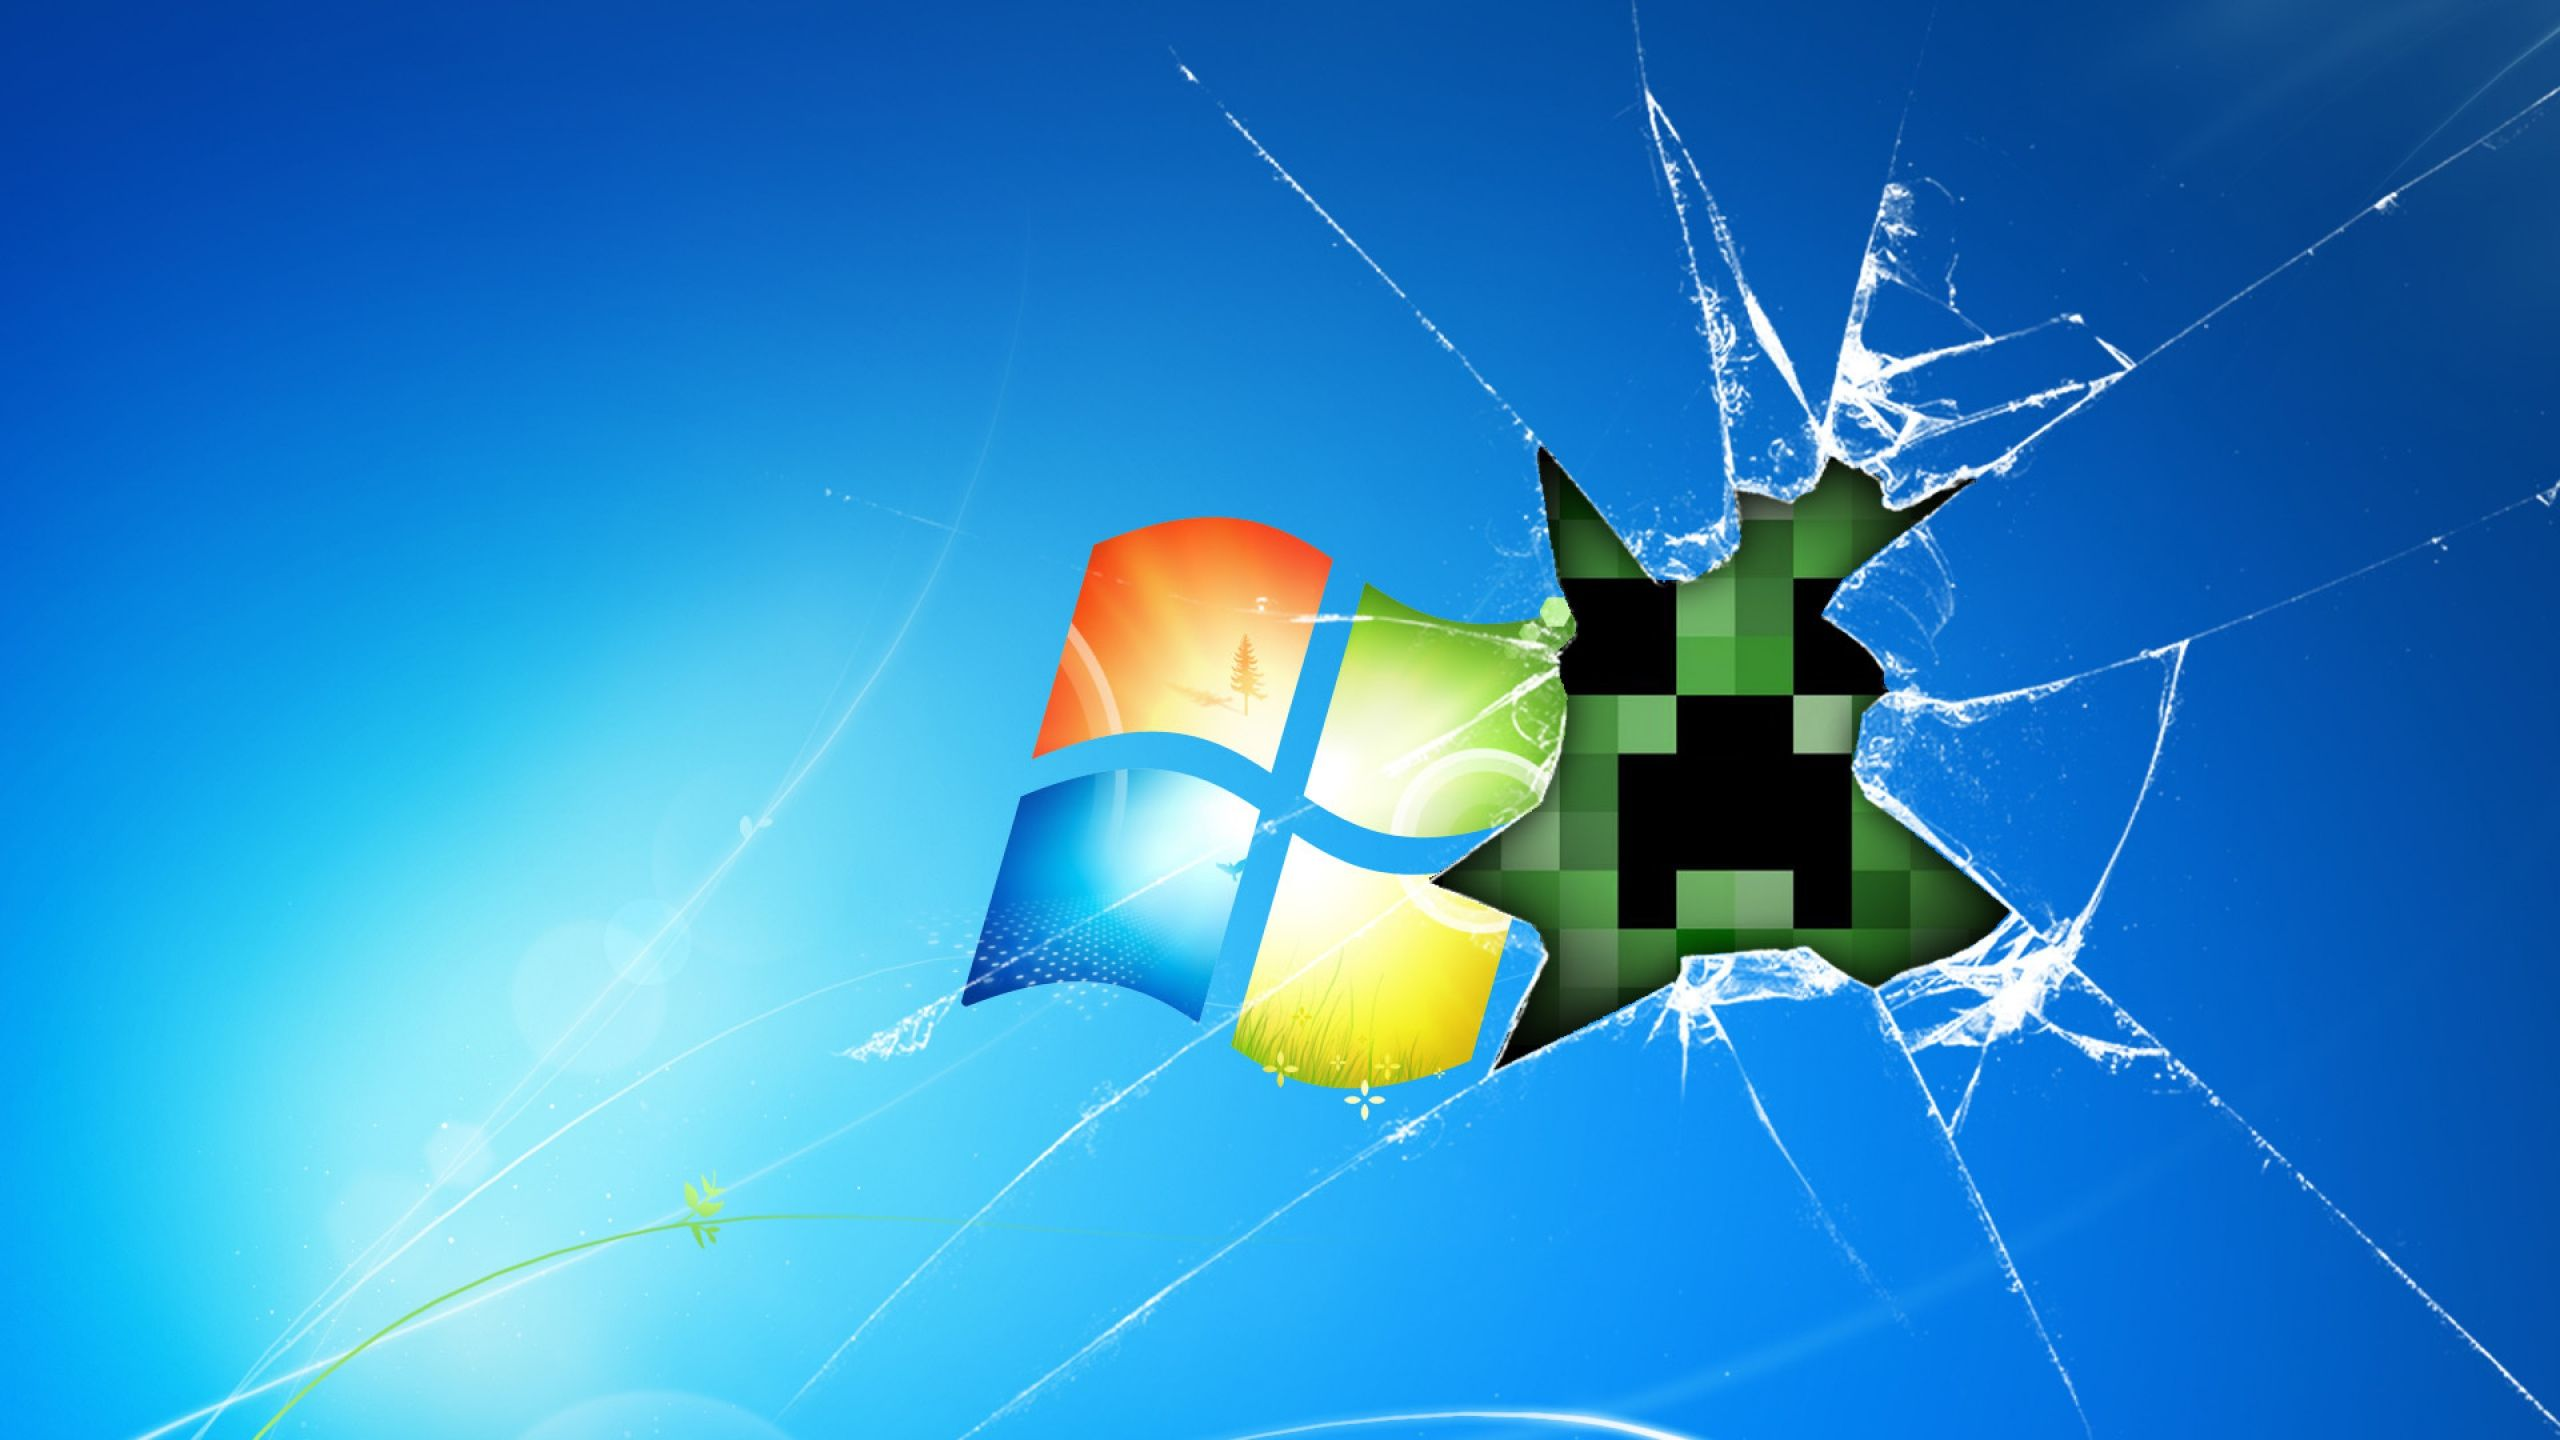 Beautiful Wallpaper Minecraft Abstract - 75076d911cefd51d81db93110783f434  You Should Have_584781.jpg